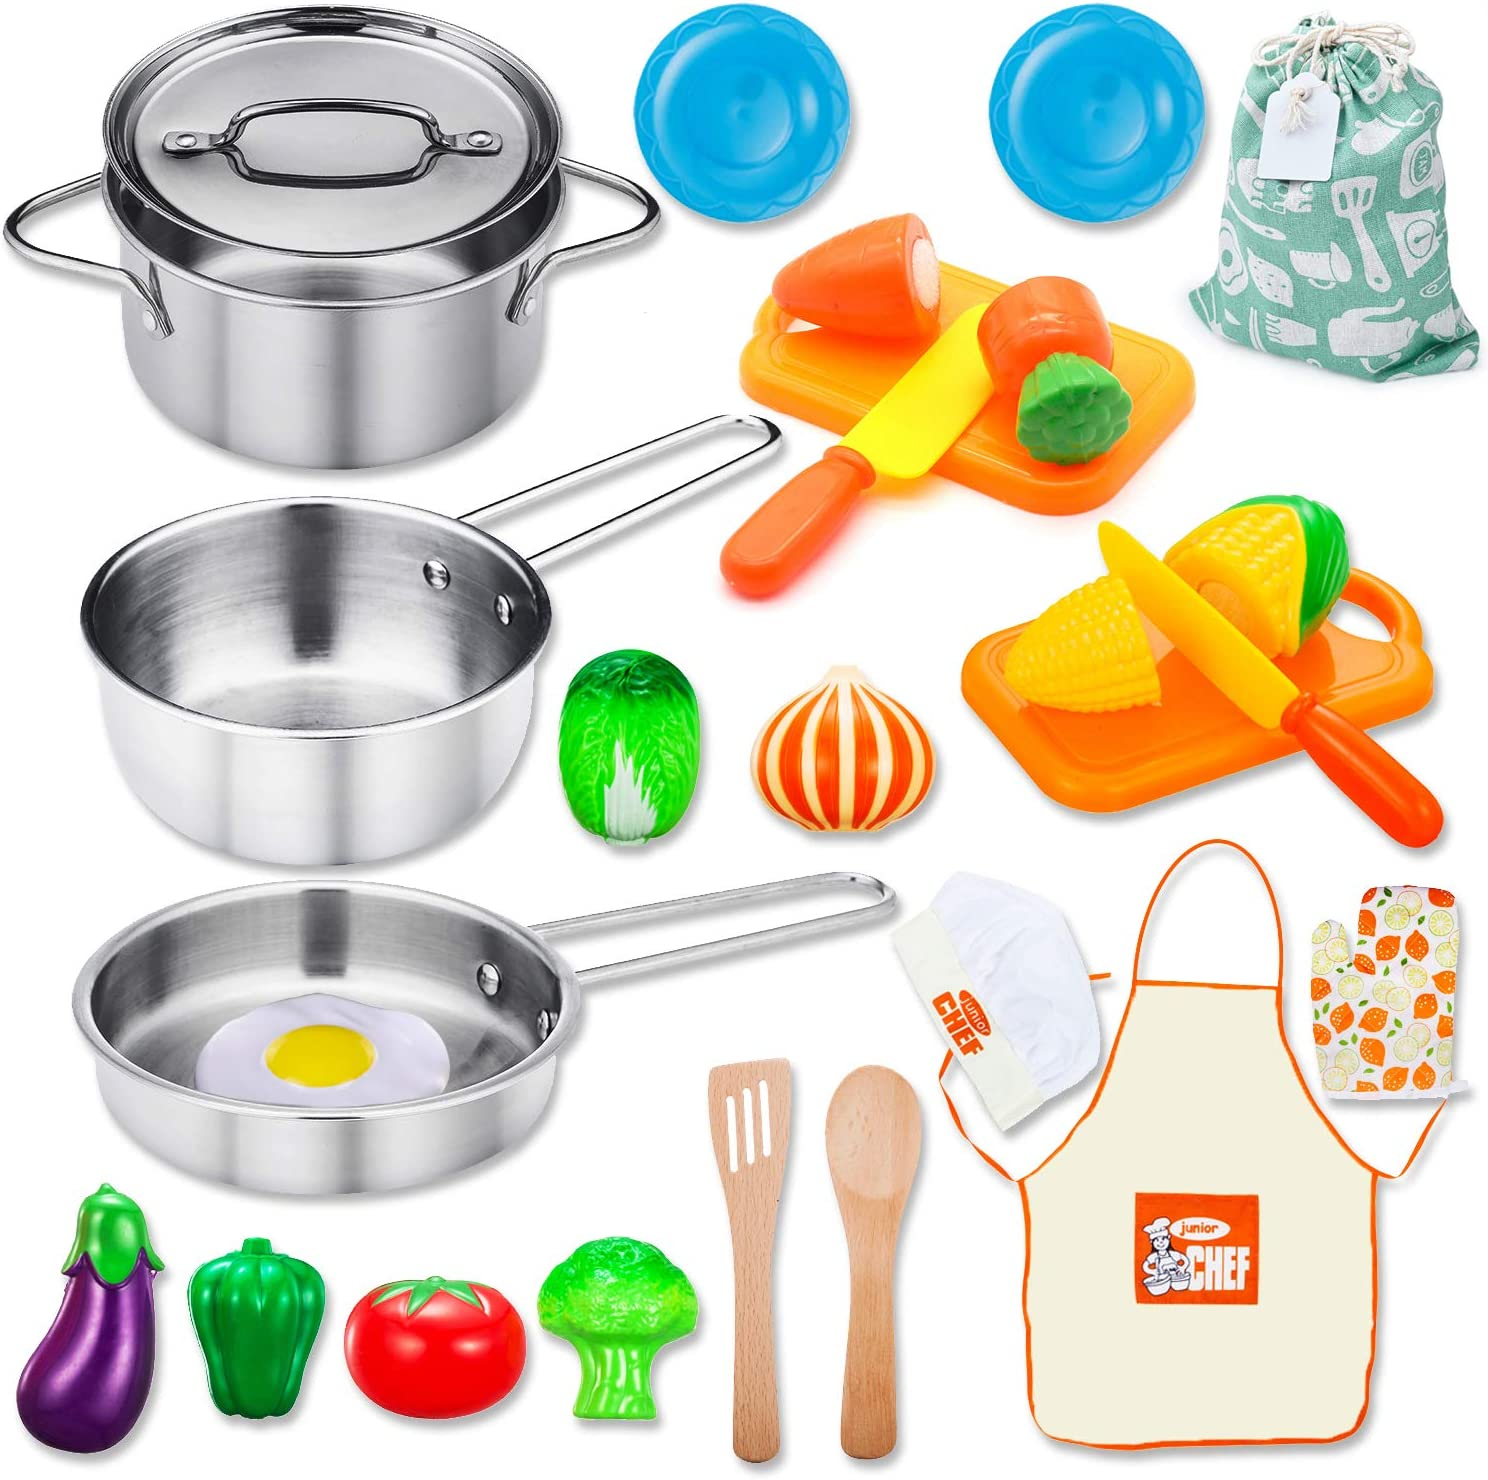 Amazon Com Kitchen Playset Accessories Toys Stainless Steel Cookware Pots And Pans Set Cooking Utensils Apron Chef Hat Cutting Play Food For Kids Toddler Boys Girls Educational Learning Tool